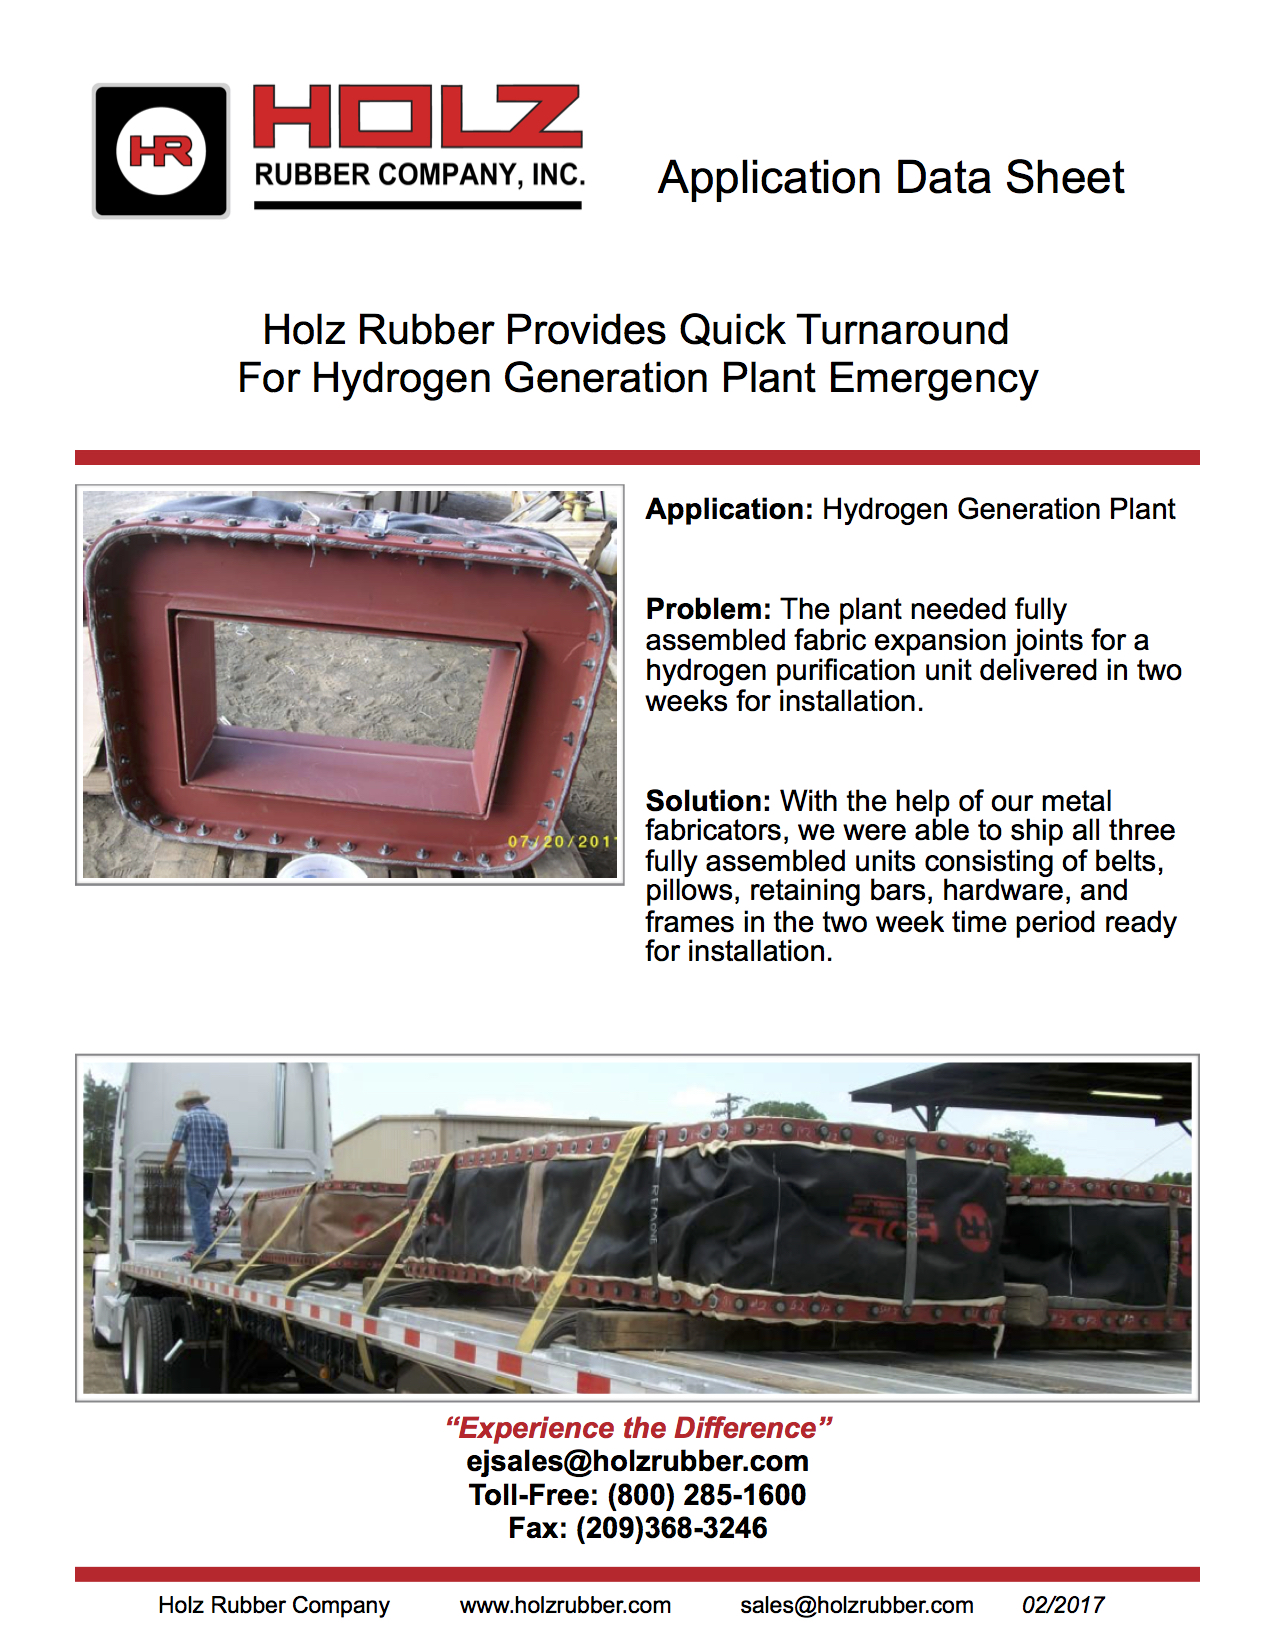 Holz Rubber Provides Quick Turnaround For Hydrogen Generation Plant Emergency